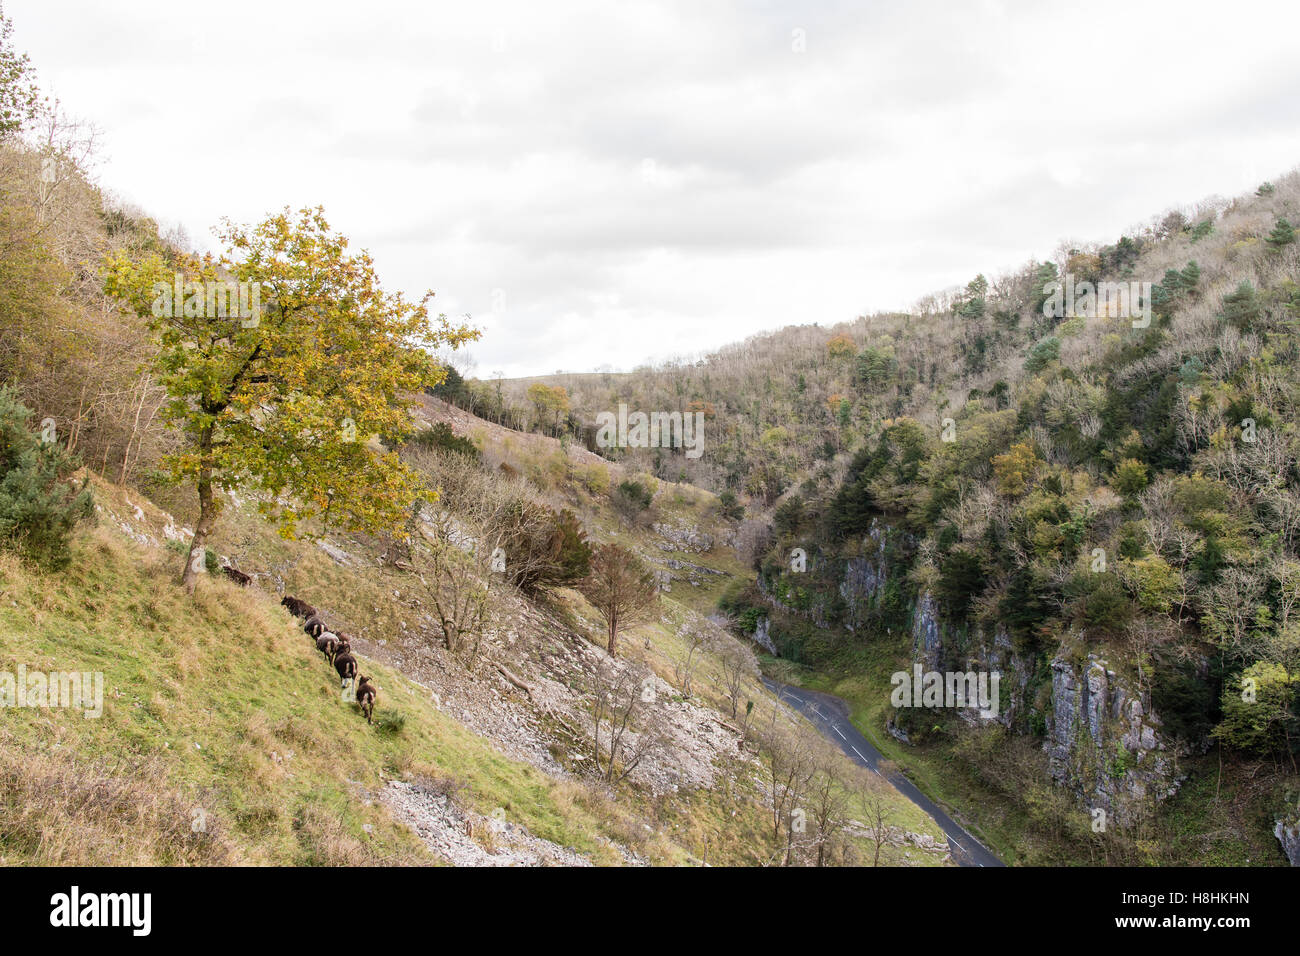 Steep terrain stock photos steep terrain stock images - Cheddar gorge hotels with swimming pools ...